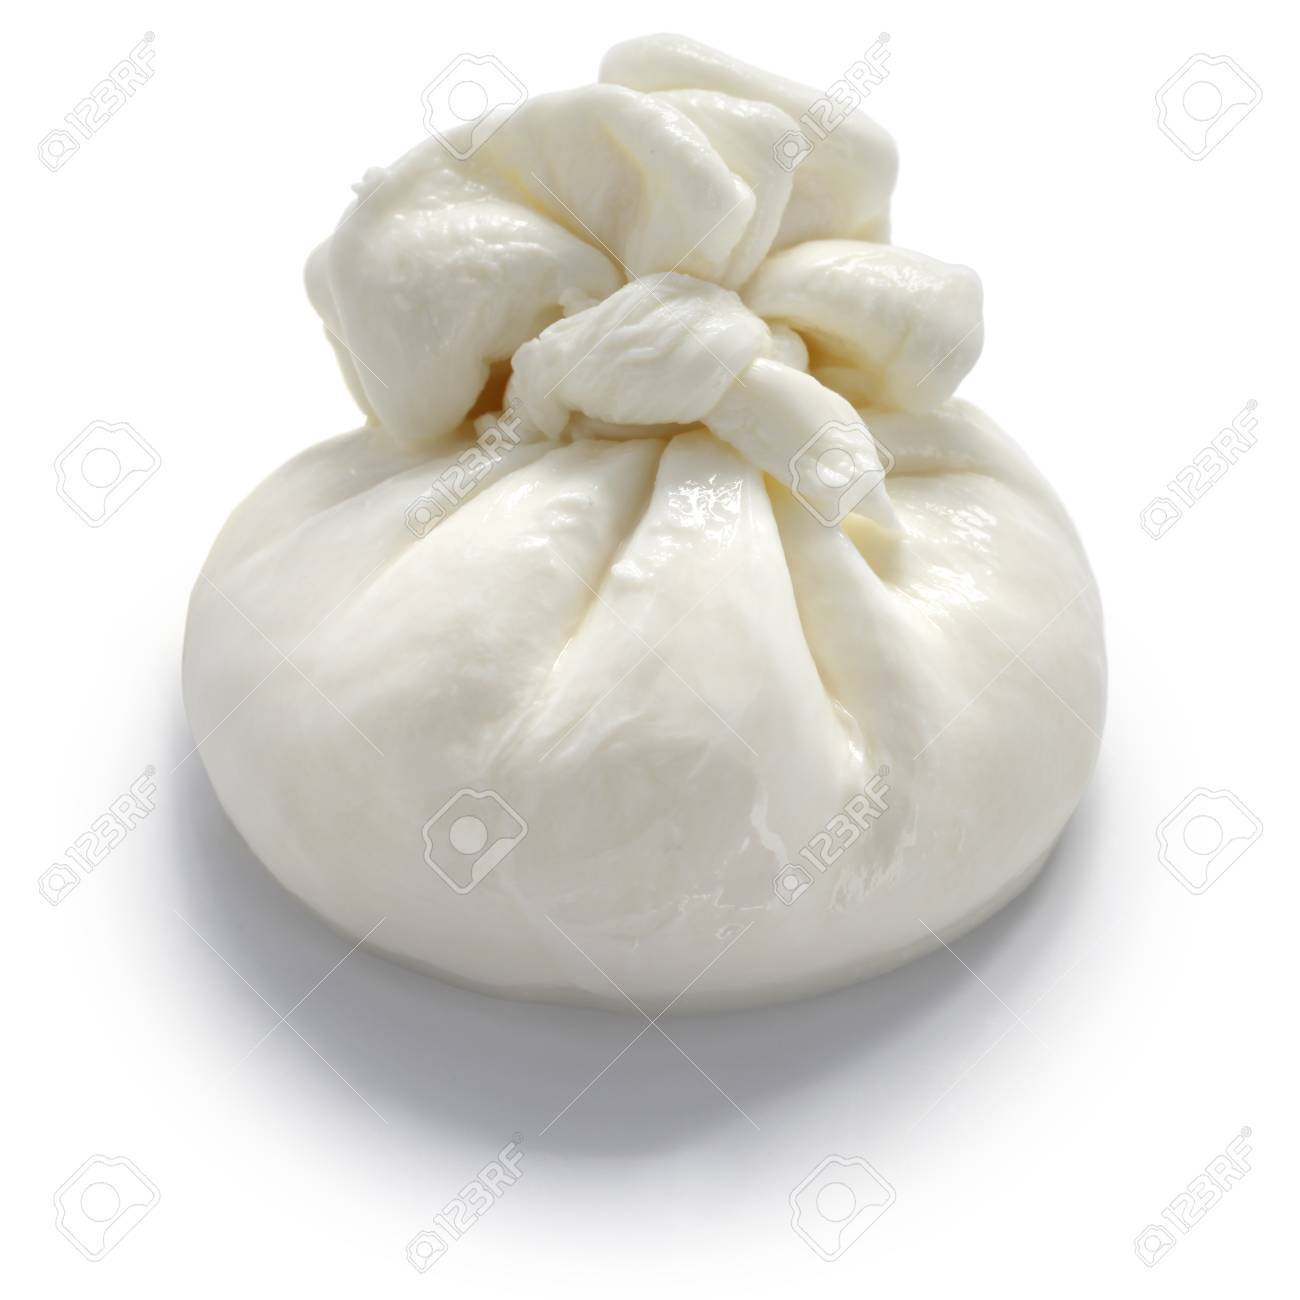 burrata is a fresh italian cheese made from mozzarella and cream. Stock Photo - 46729974